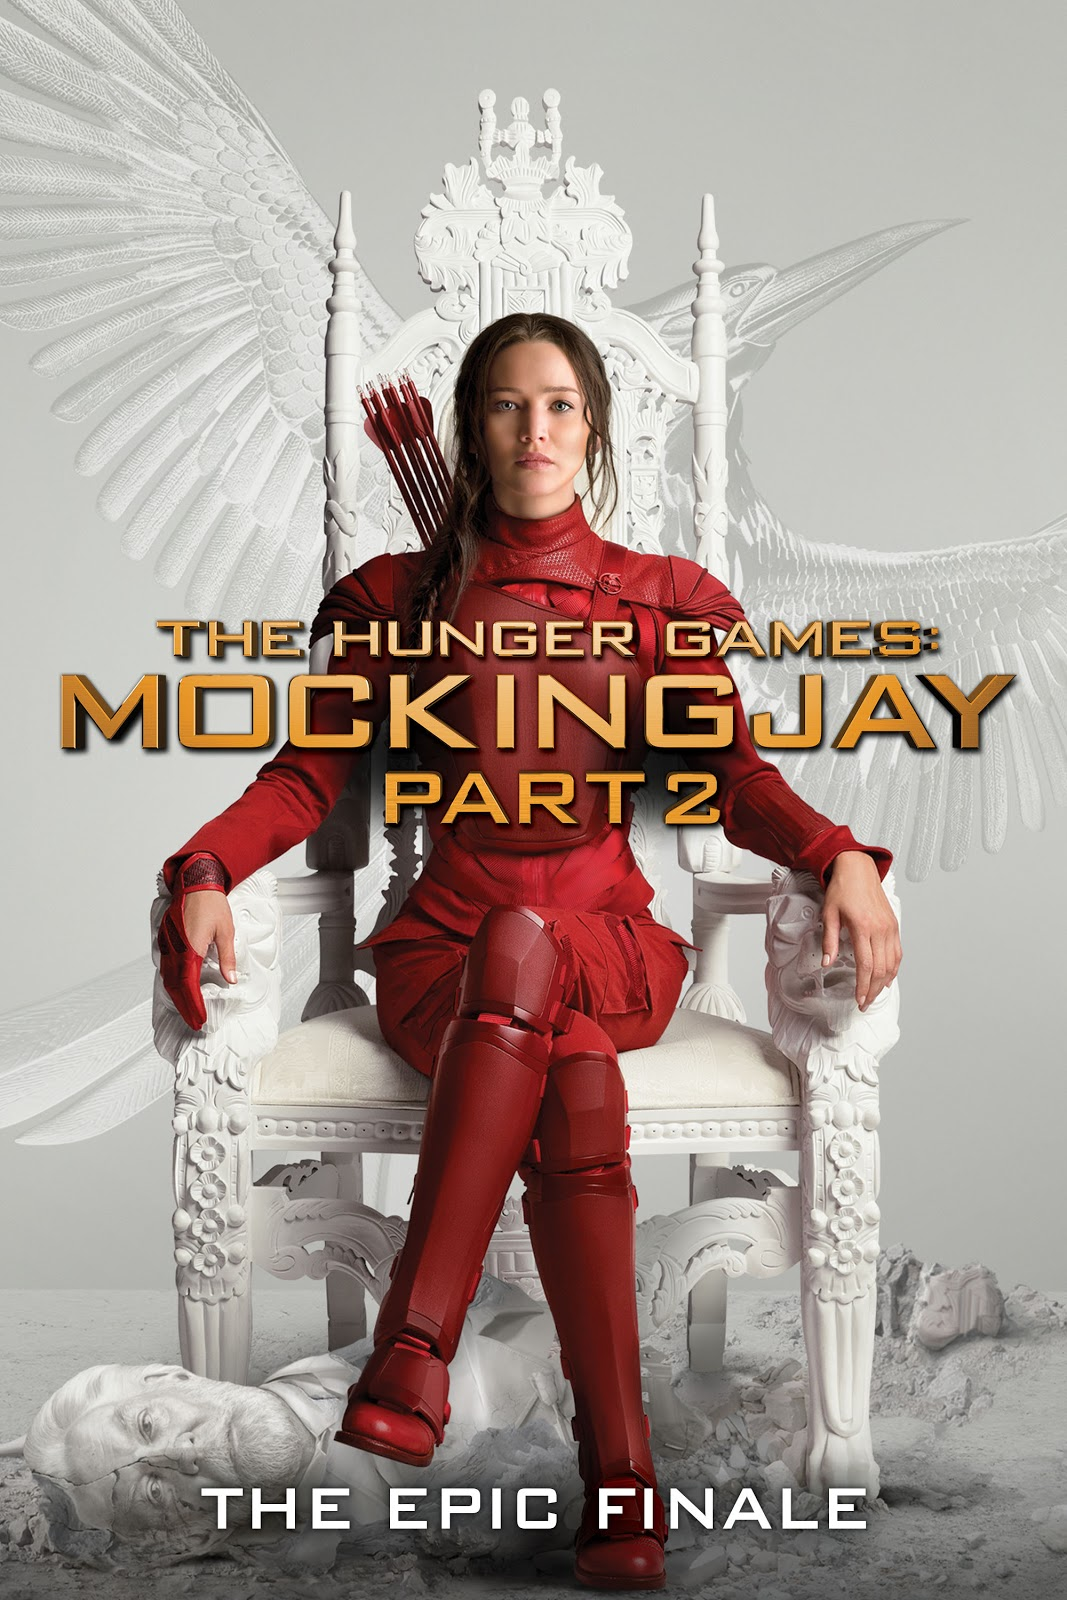 the hunger games mockingjay part 2 digital download the epic finale